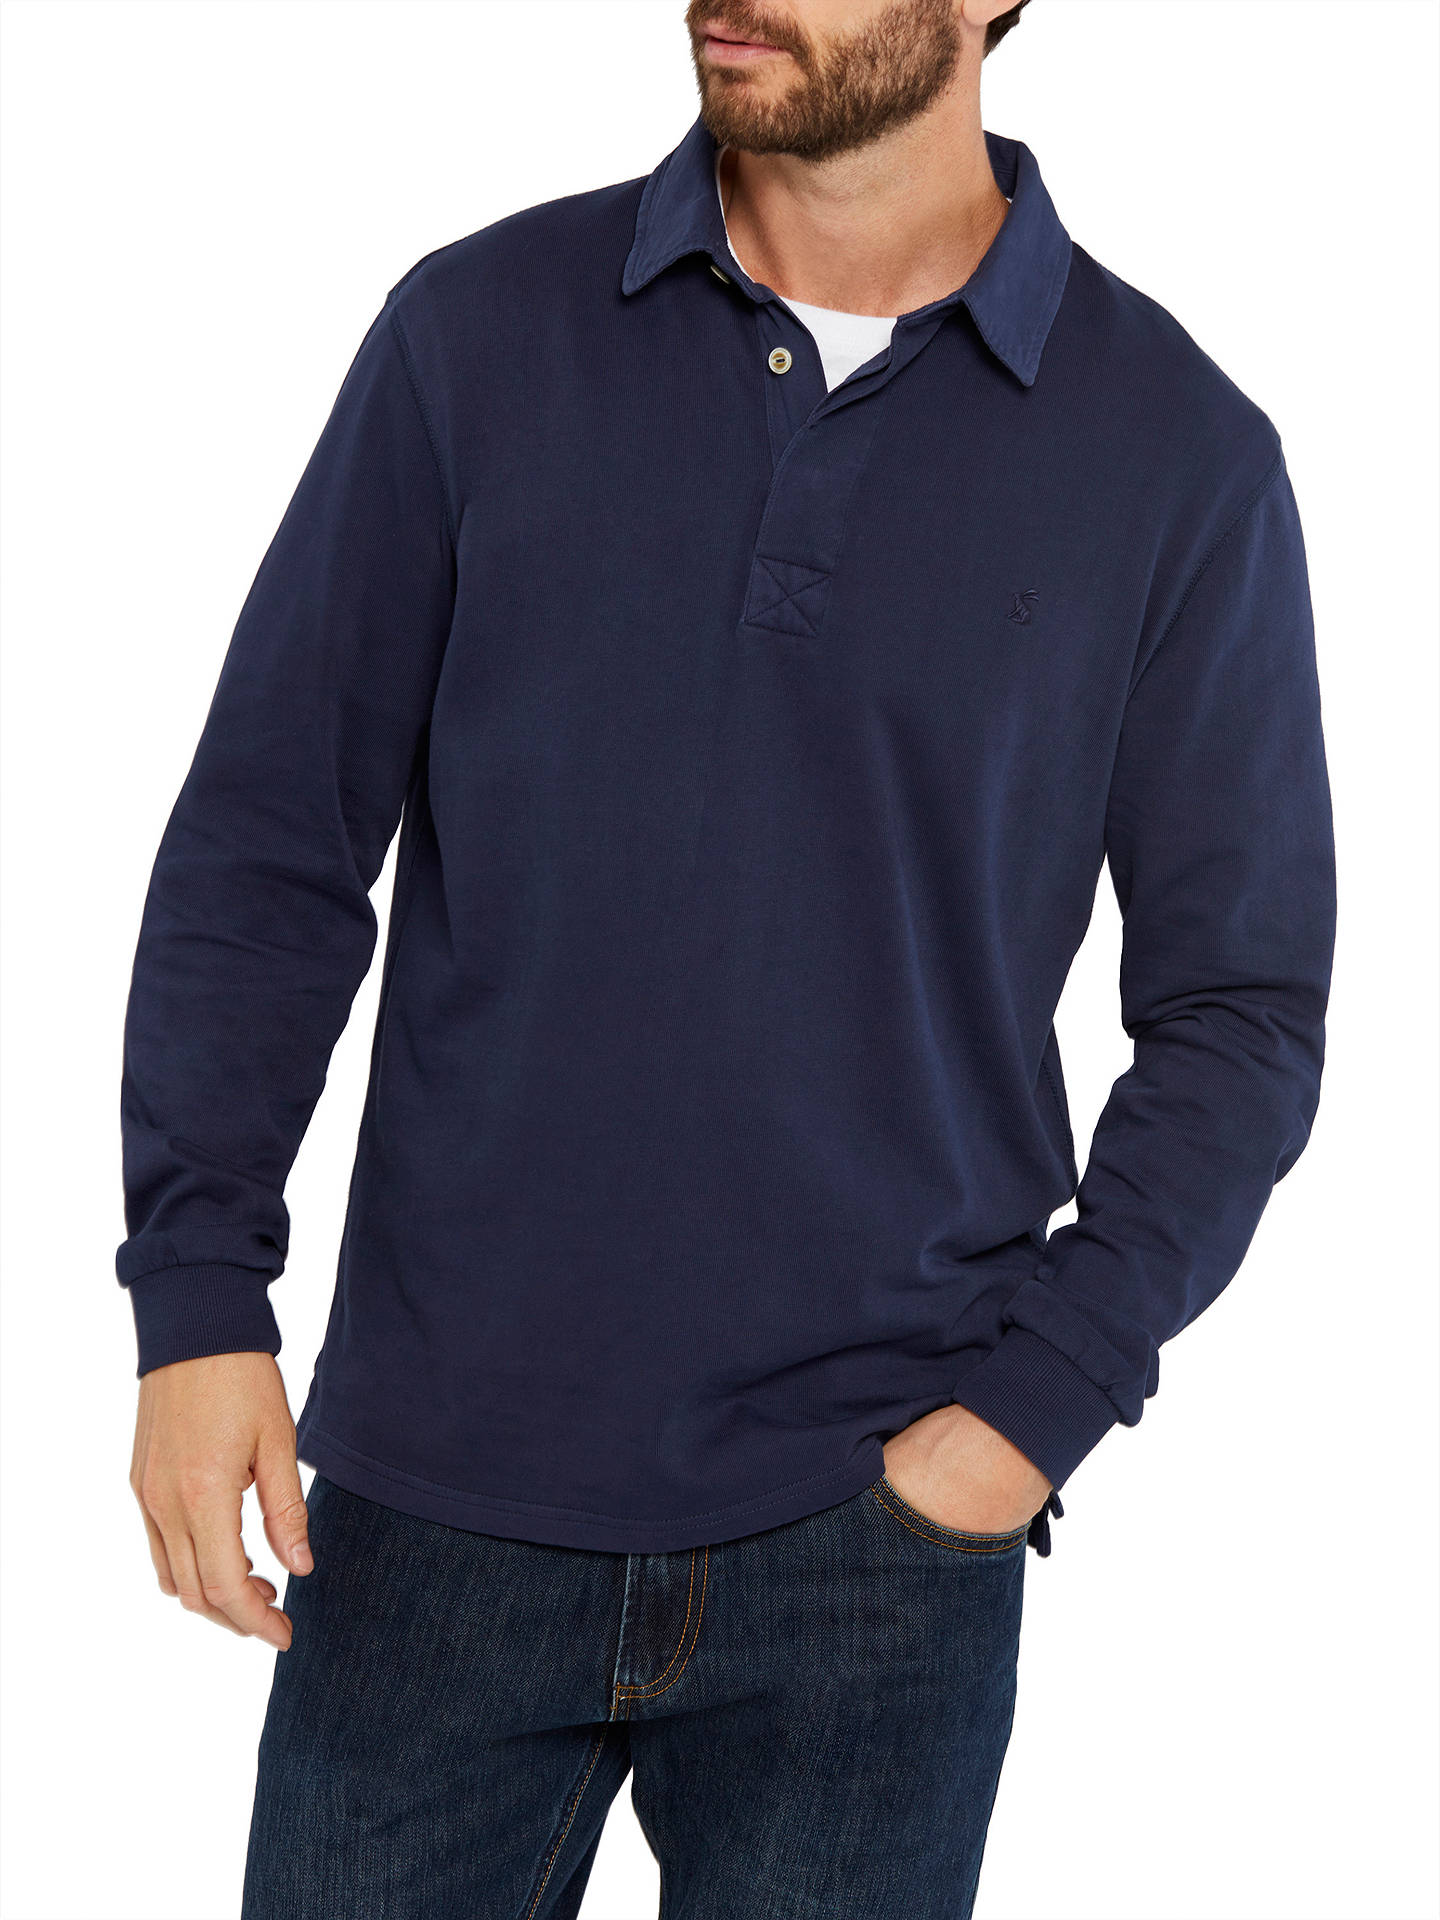 cc210c77354 Buy Joules Parkside Rugby Jersey Top, French Navy, S Online at  johnlewis.com ...